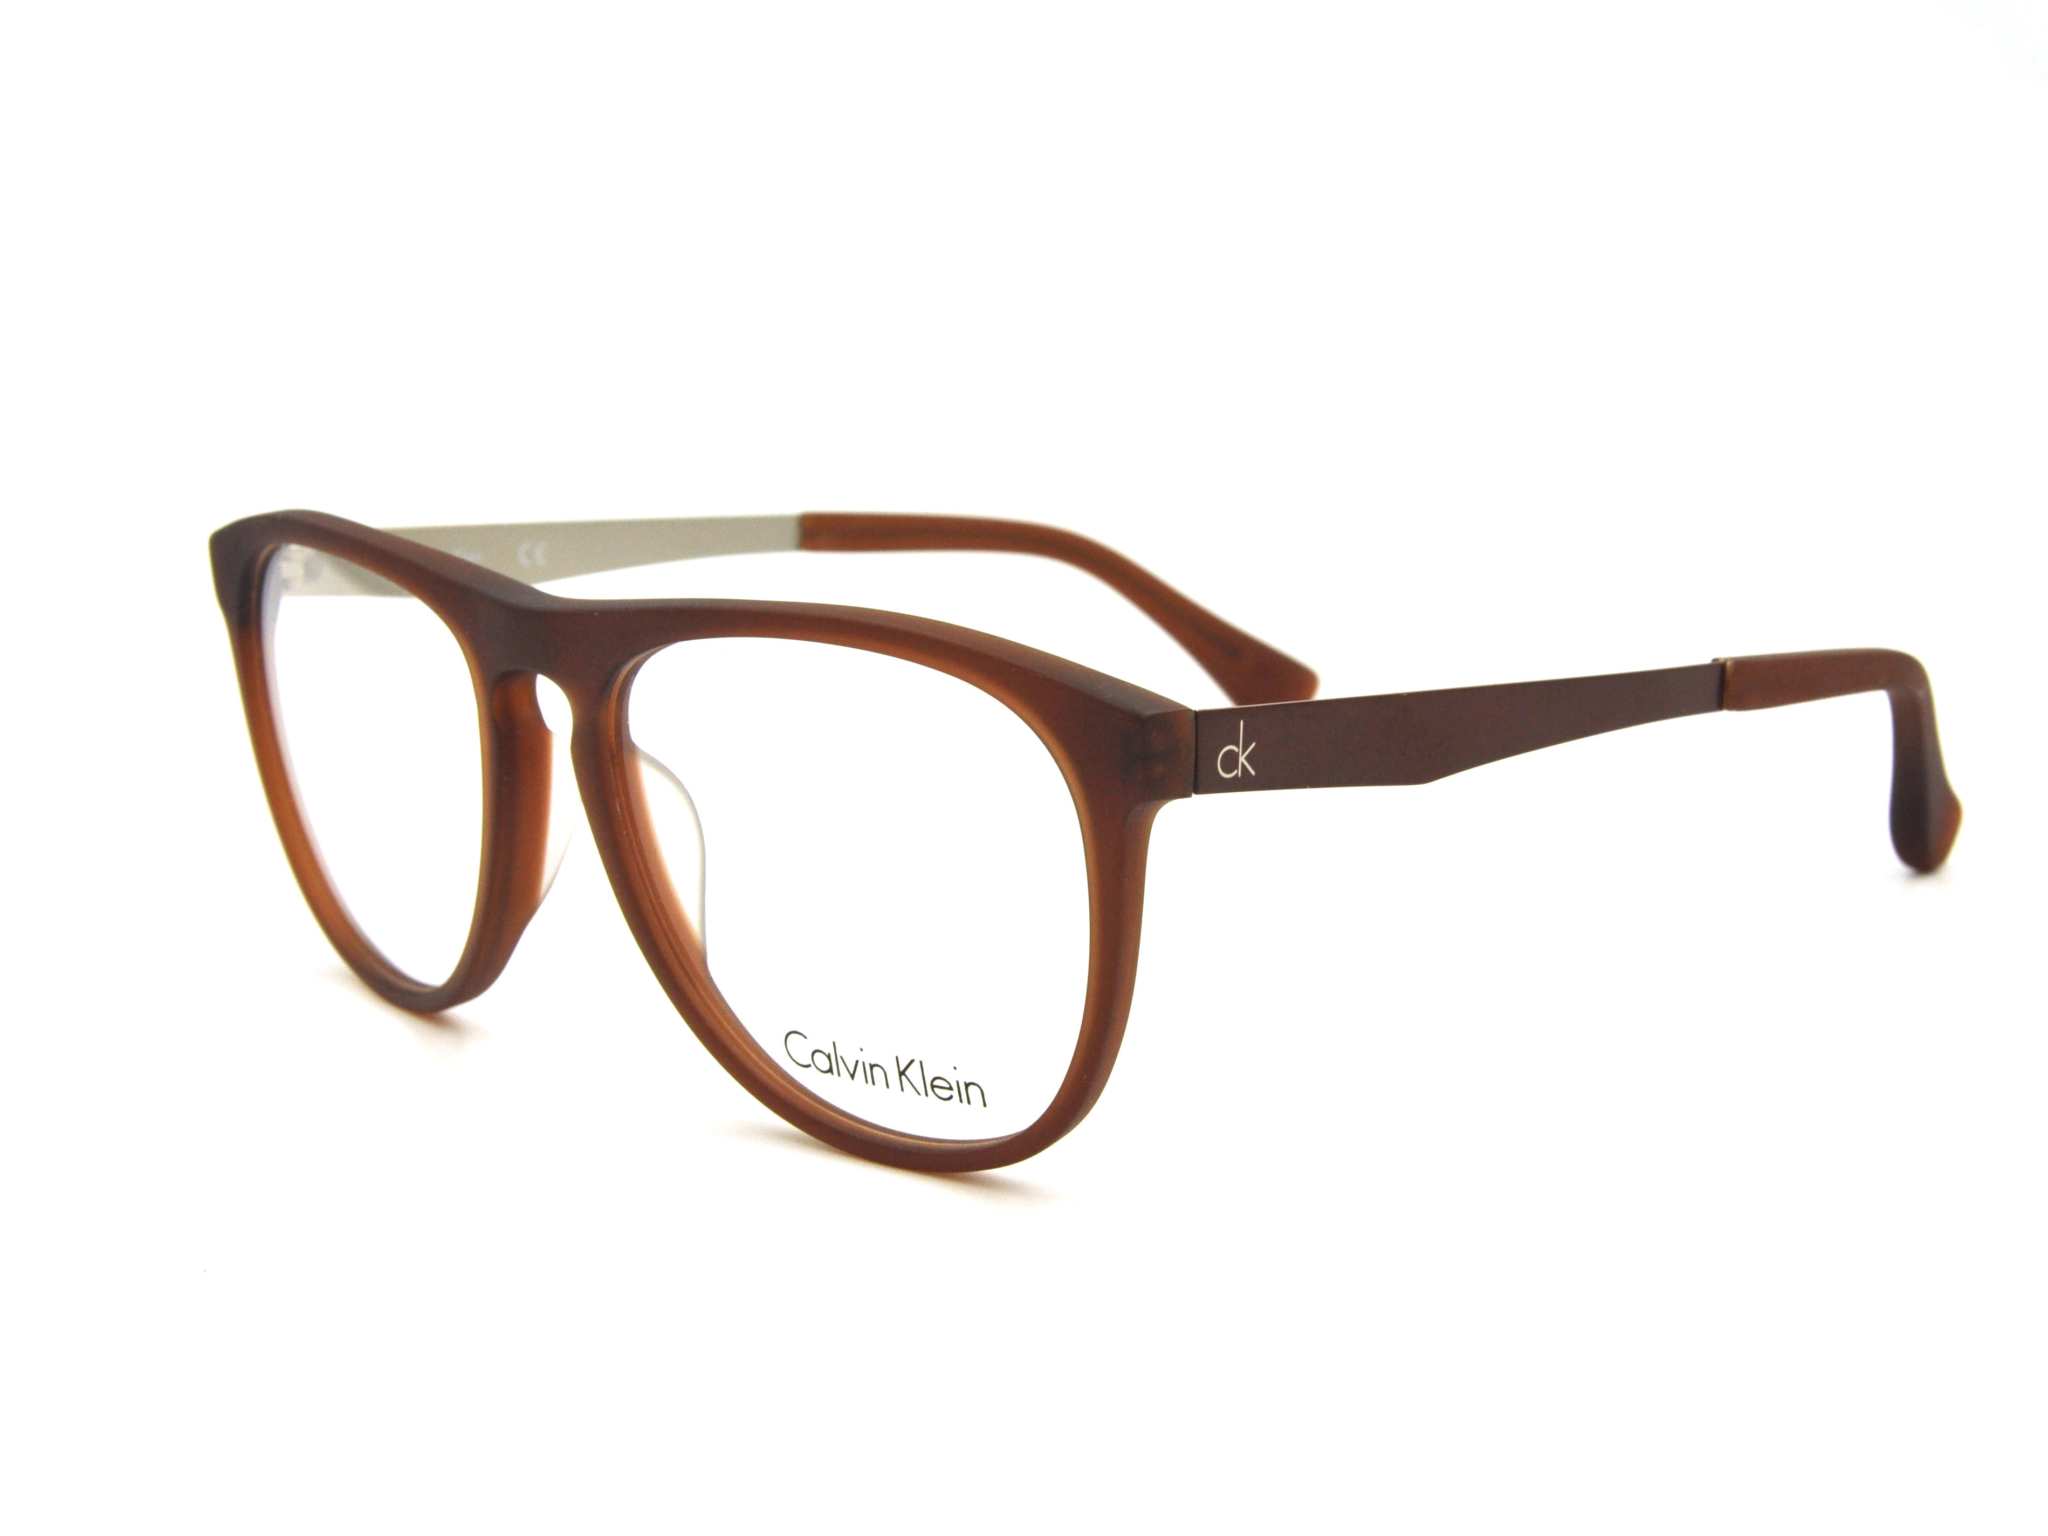 CALVIN KLEIN CK5888 201 Prescription Glasses 2020